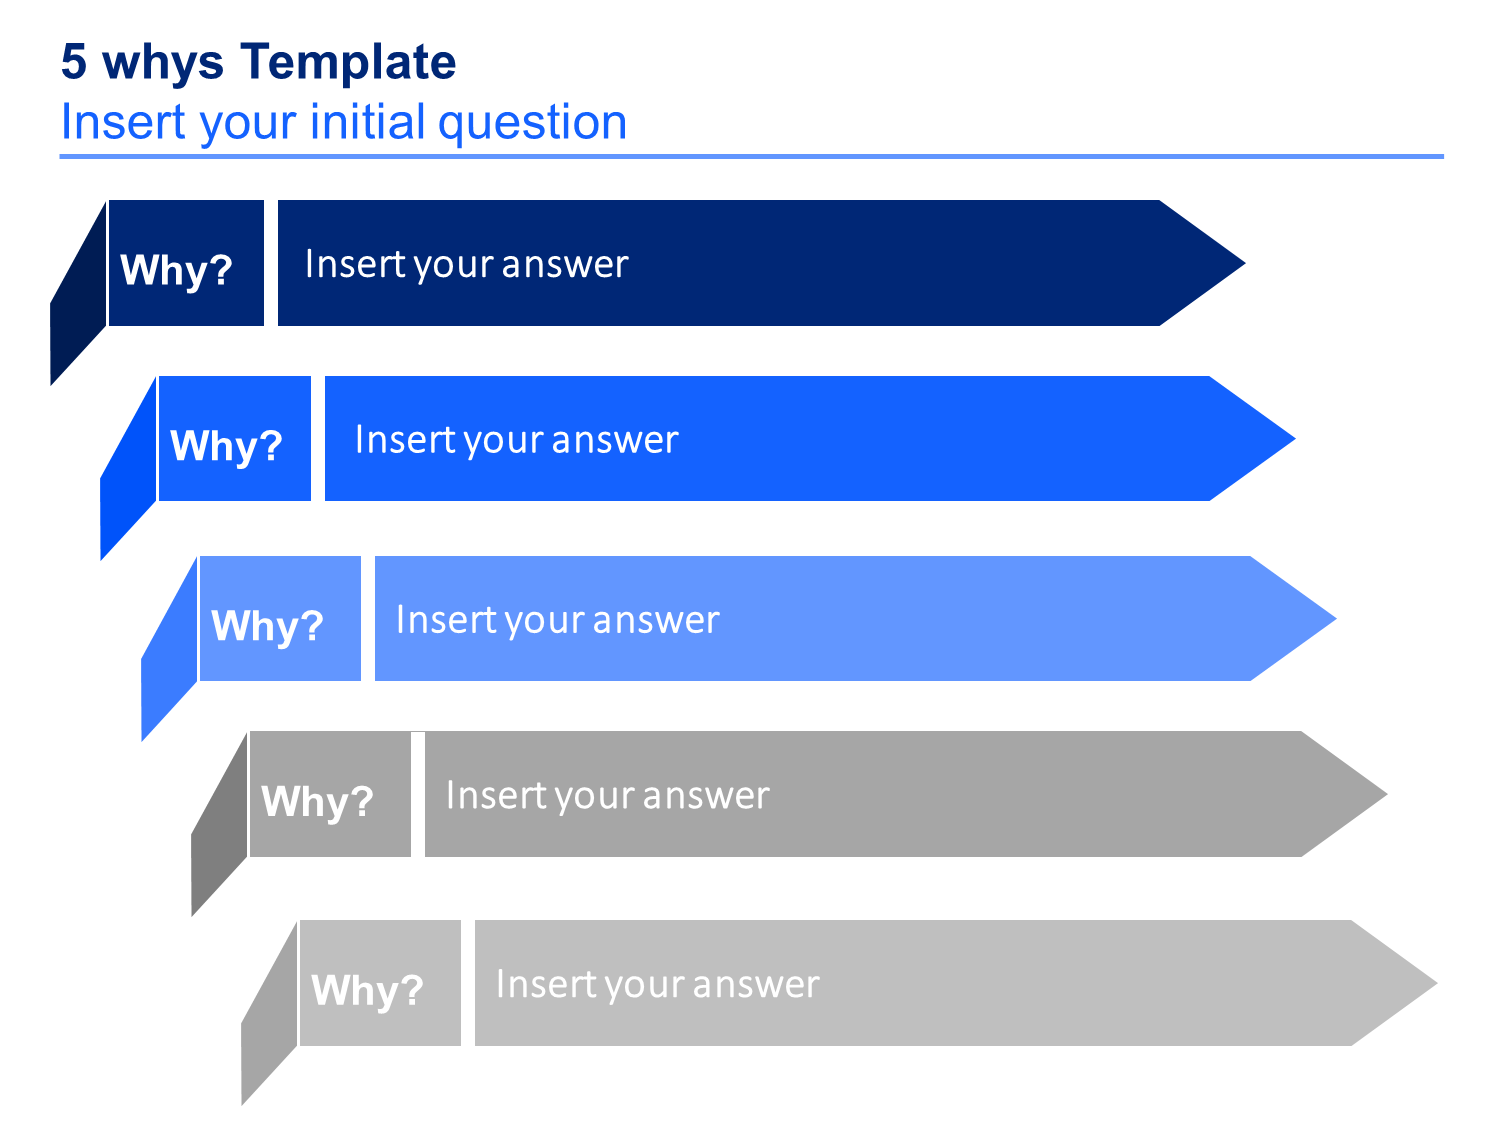 Image result for 5 Whys Template | Strategy tools ...